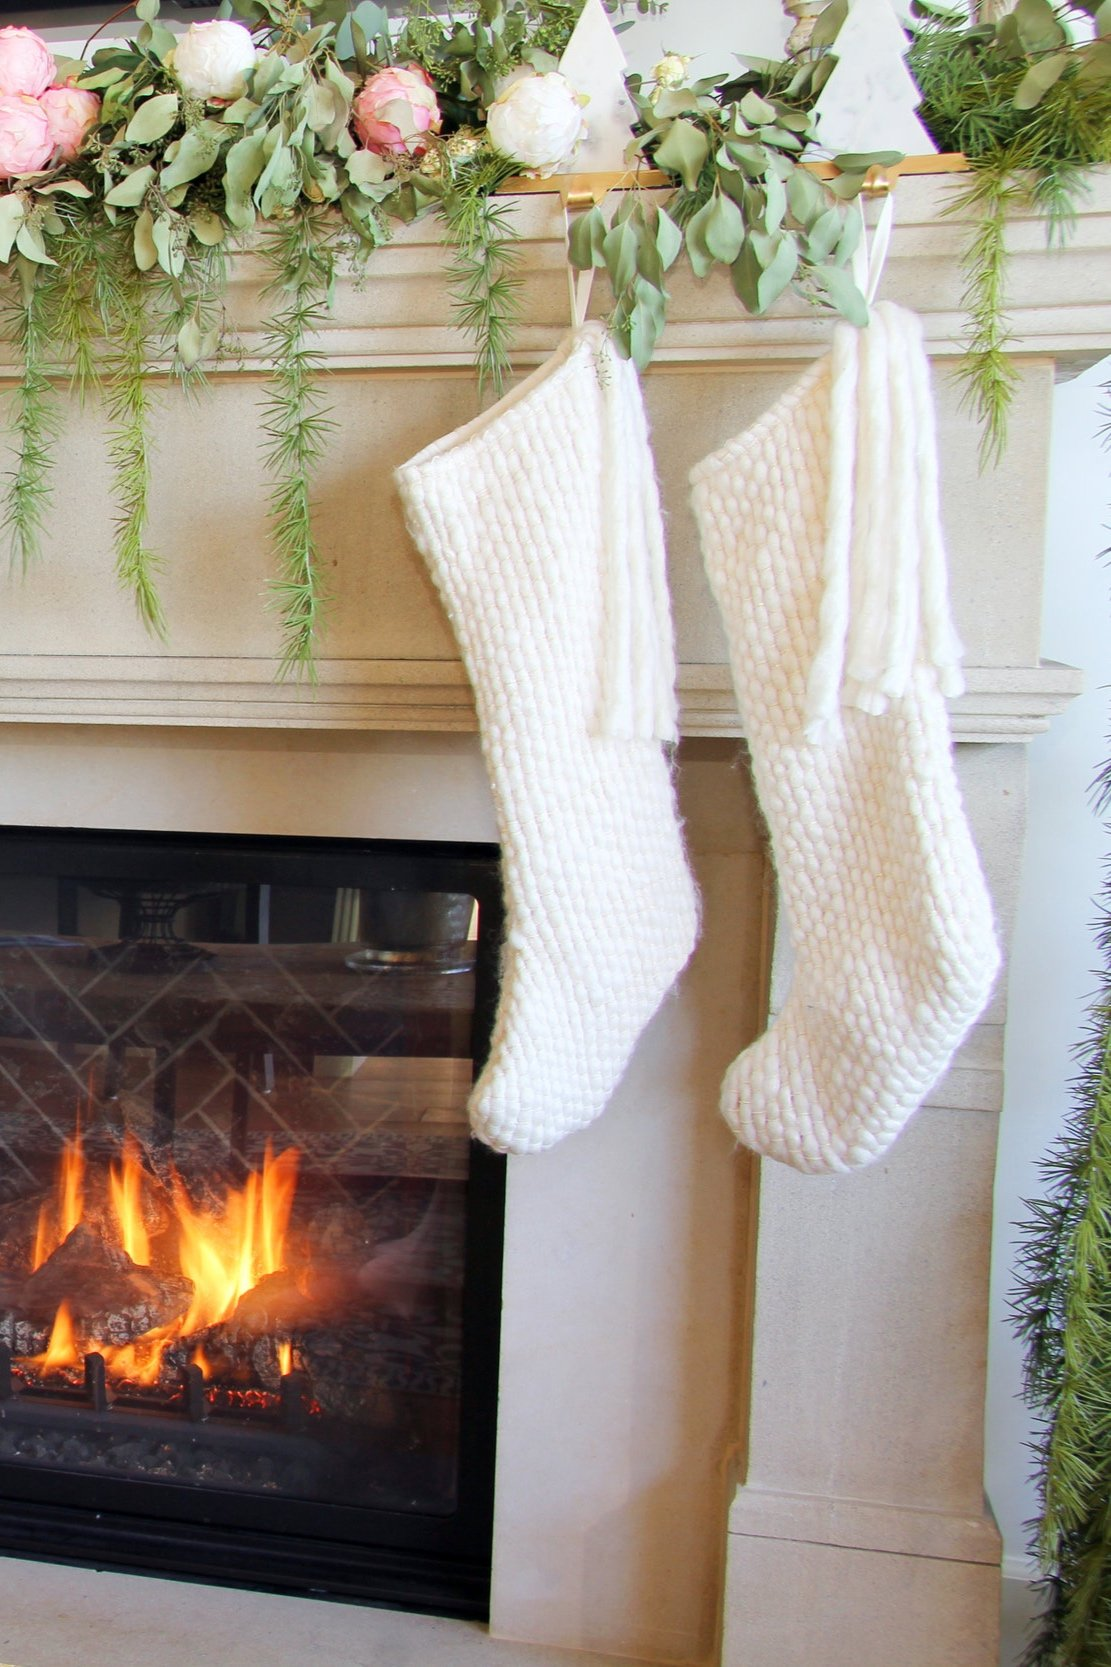 Read more about the article Small Unique Gifts That Make the Most Awesome Stocking Stuffers